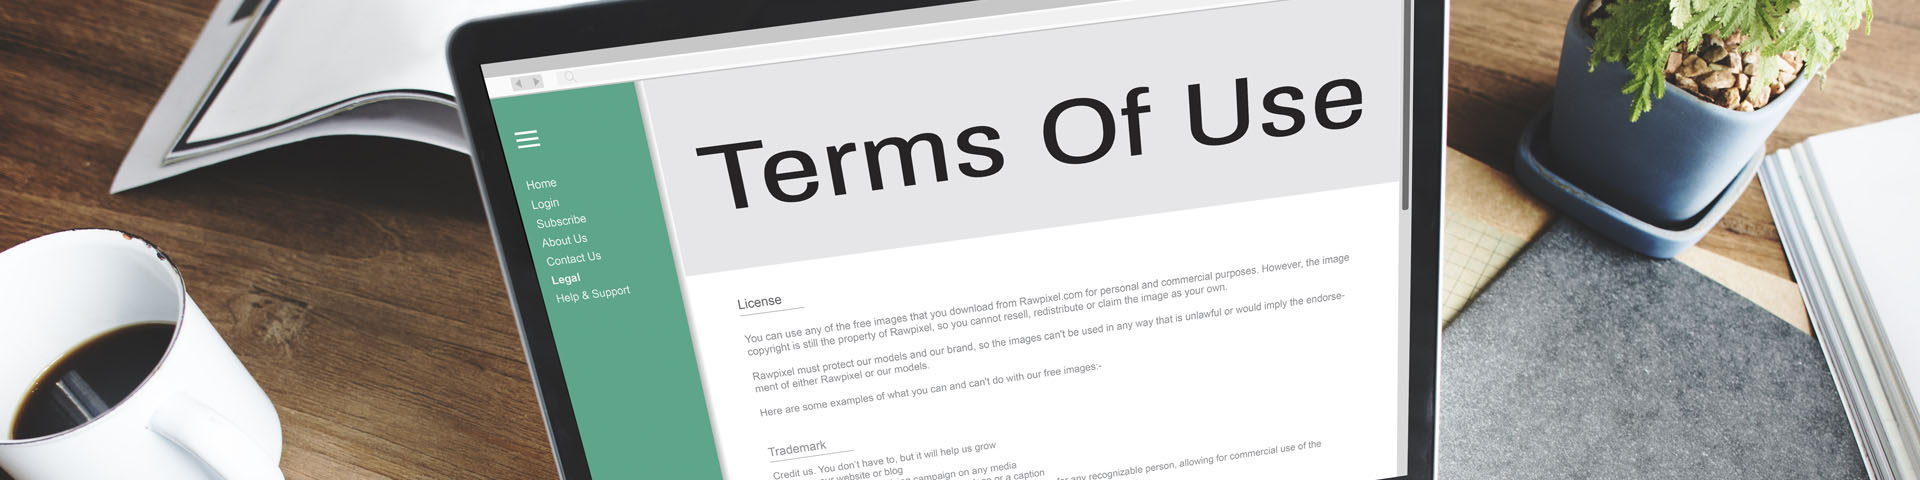 Terms of Use - Thumb Bank